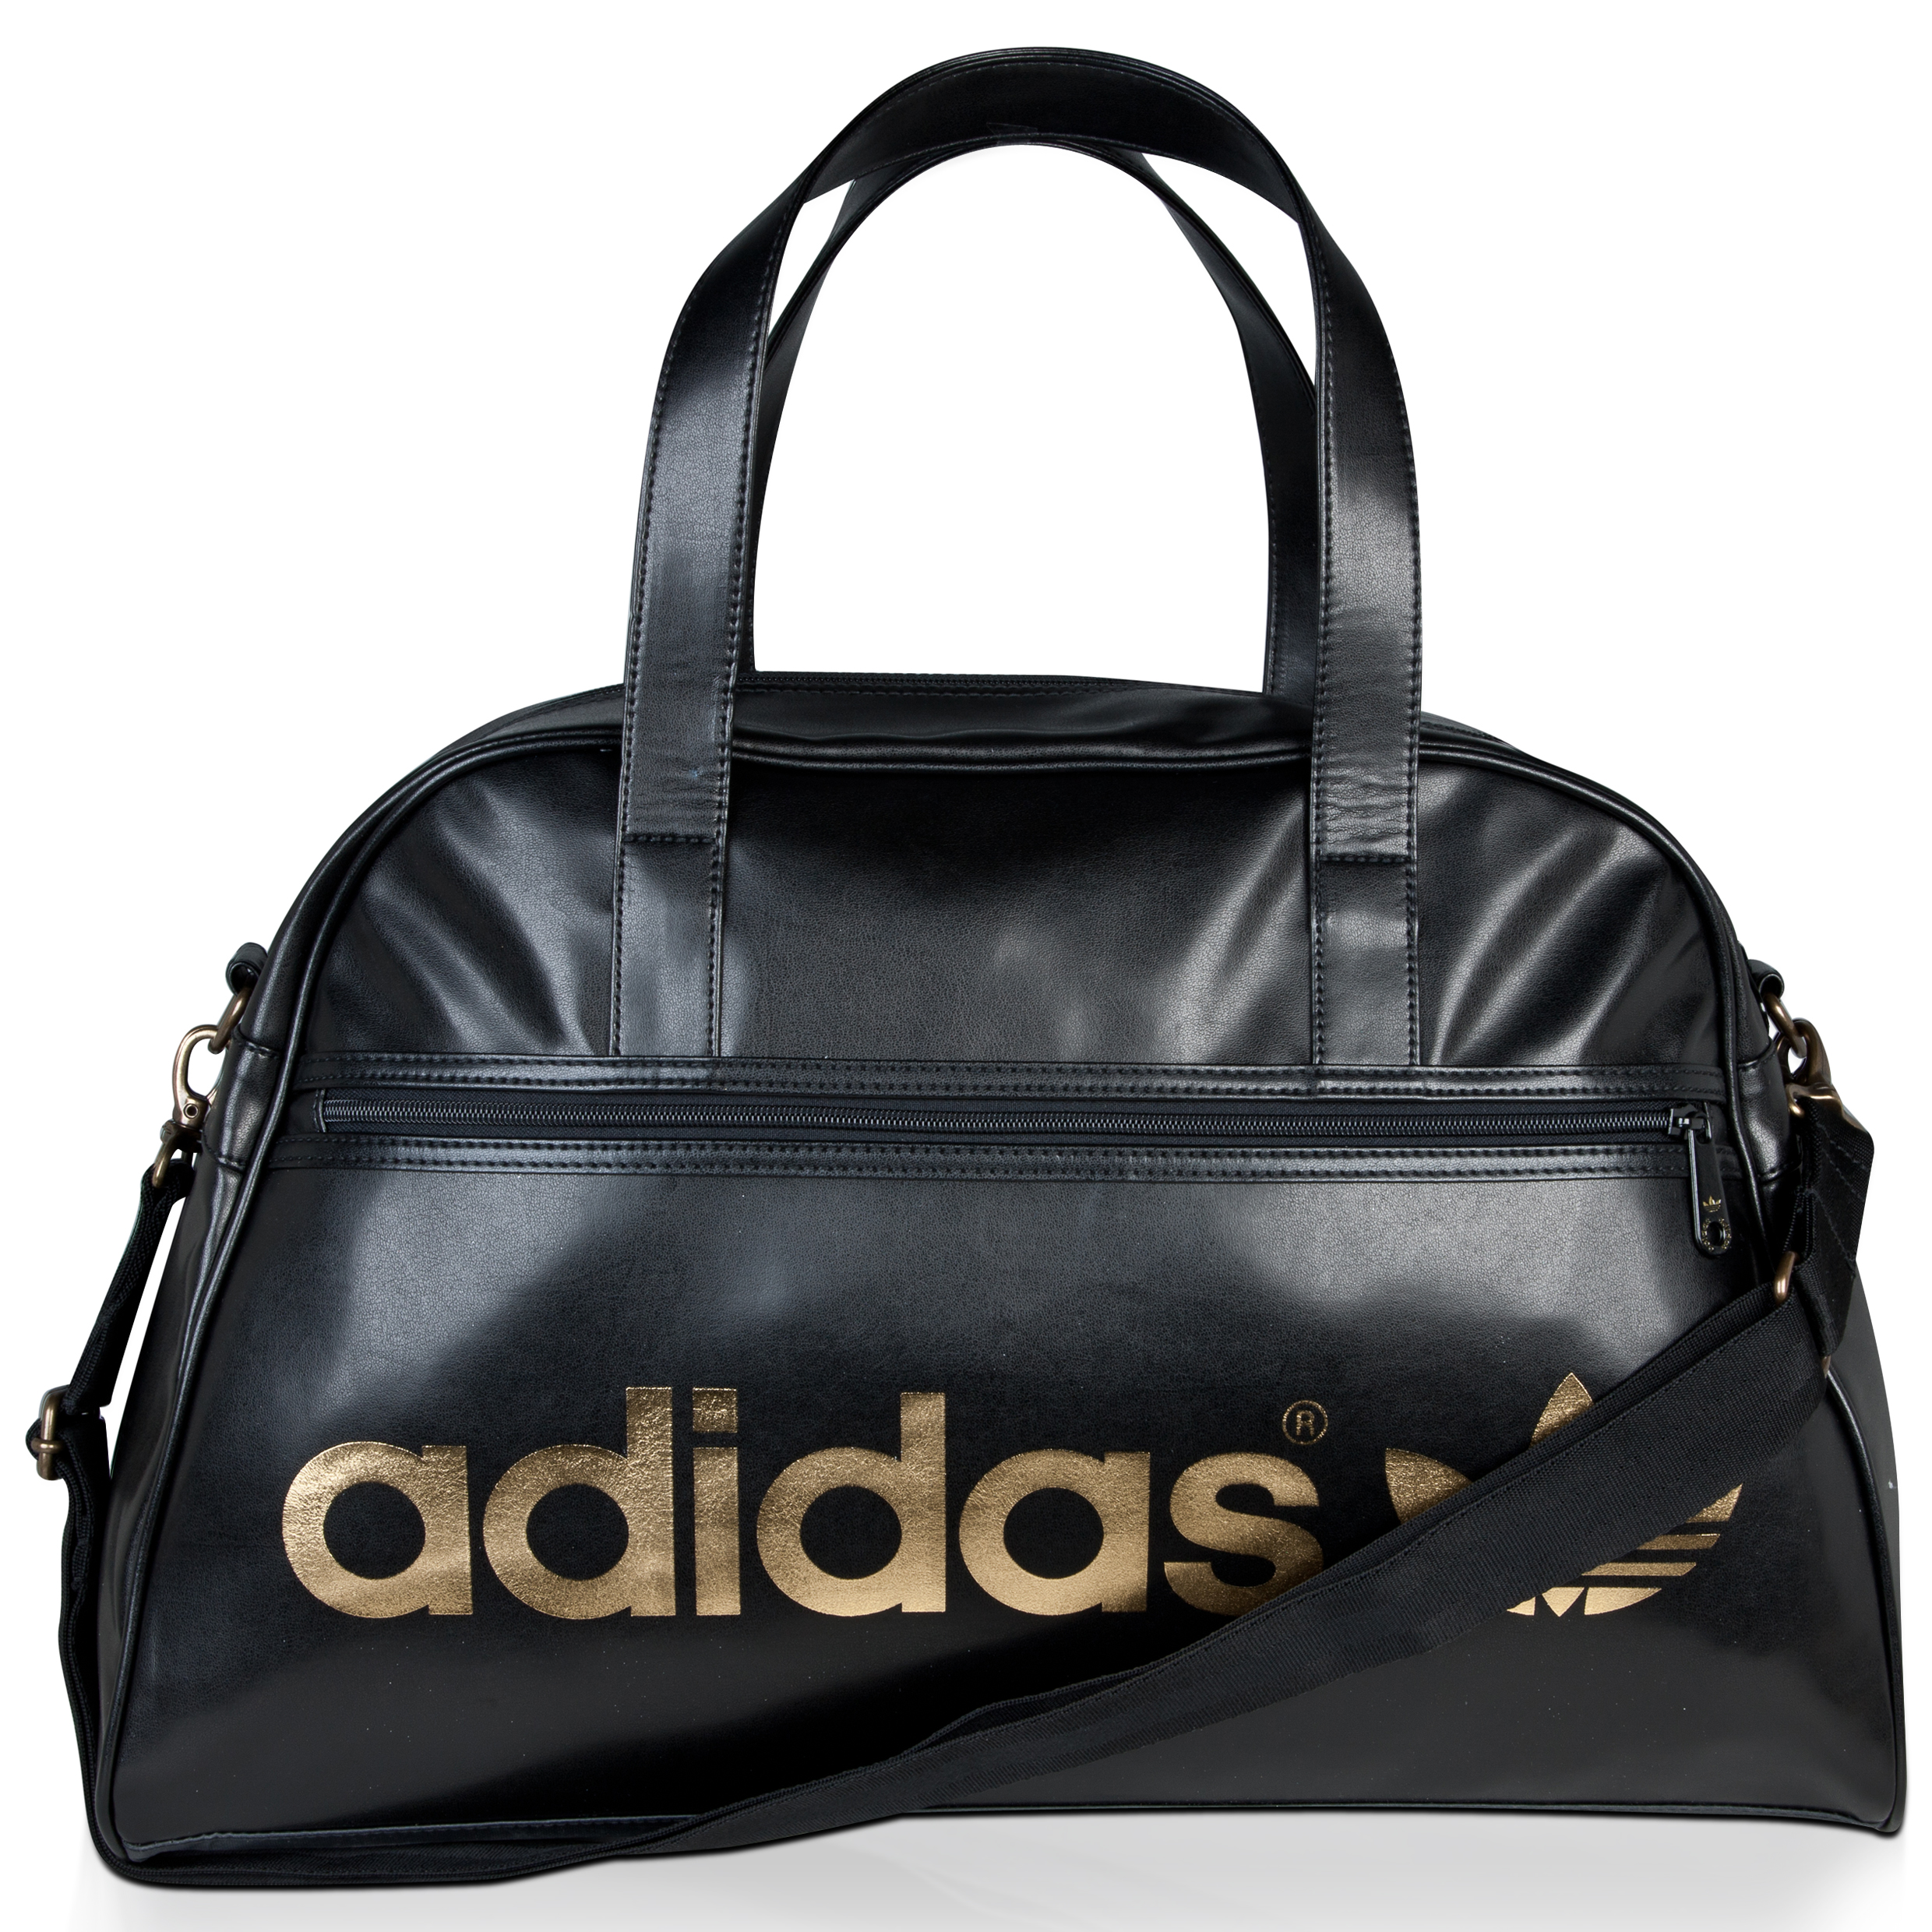 Originals AC Holdall - Black/Metallic Gold